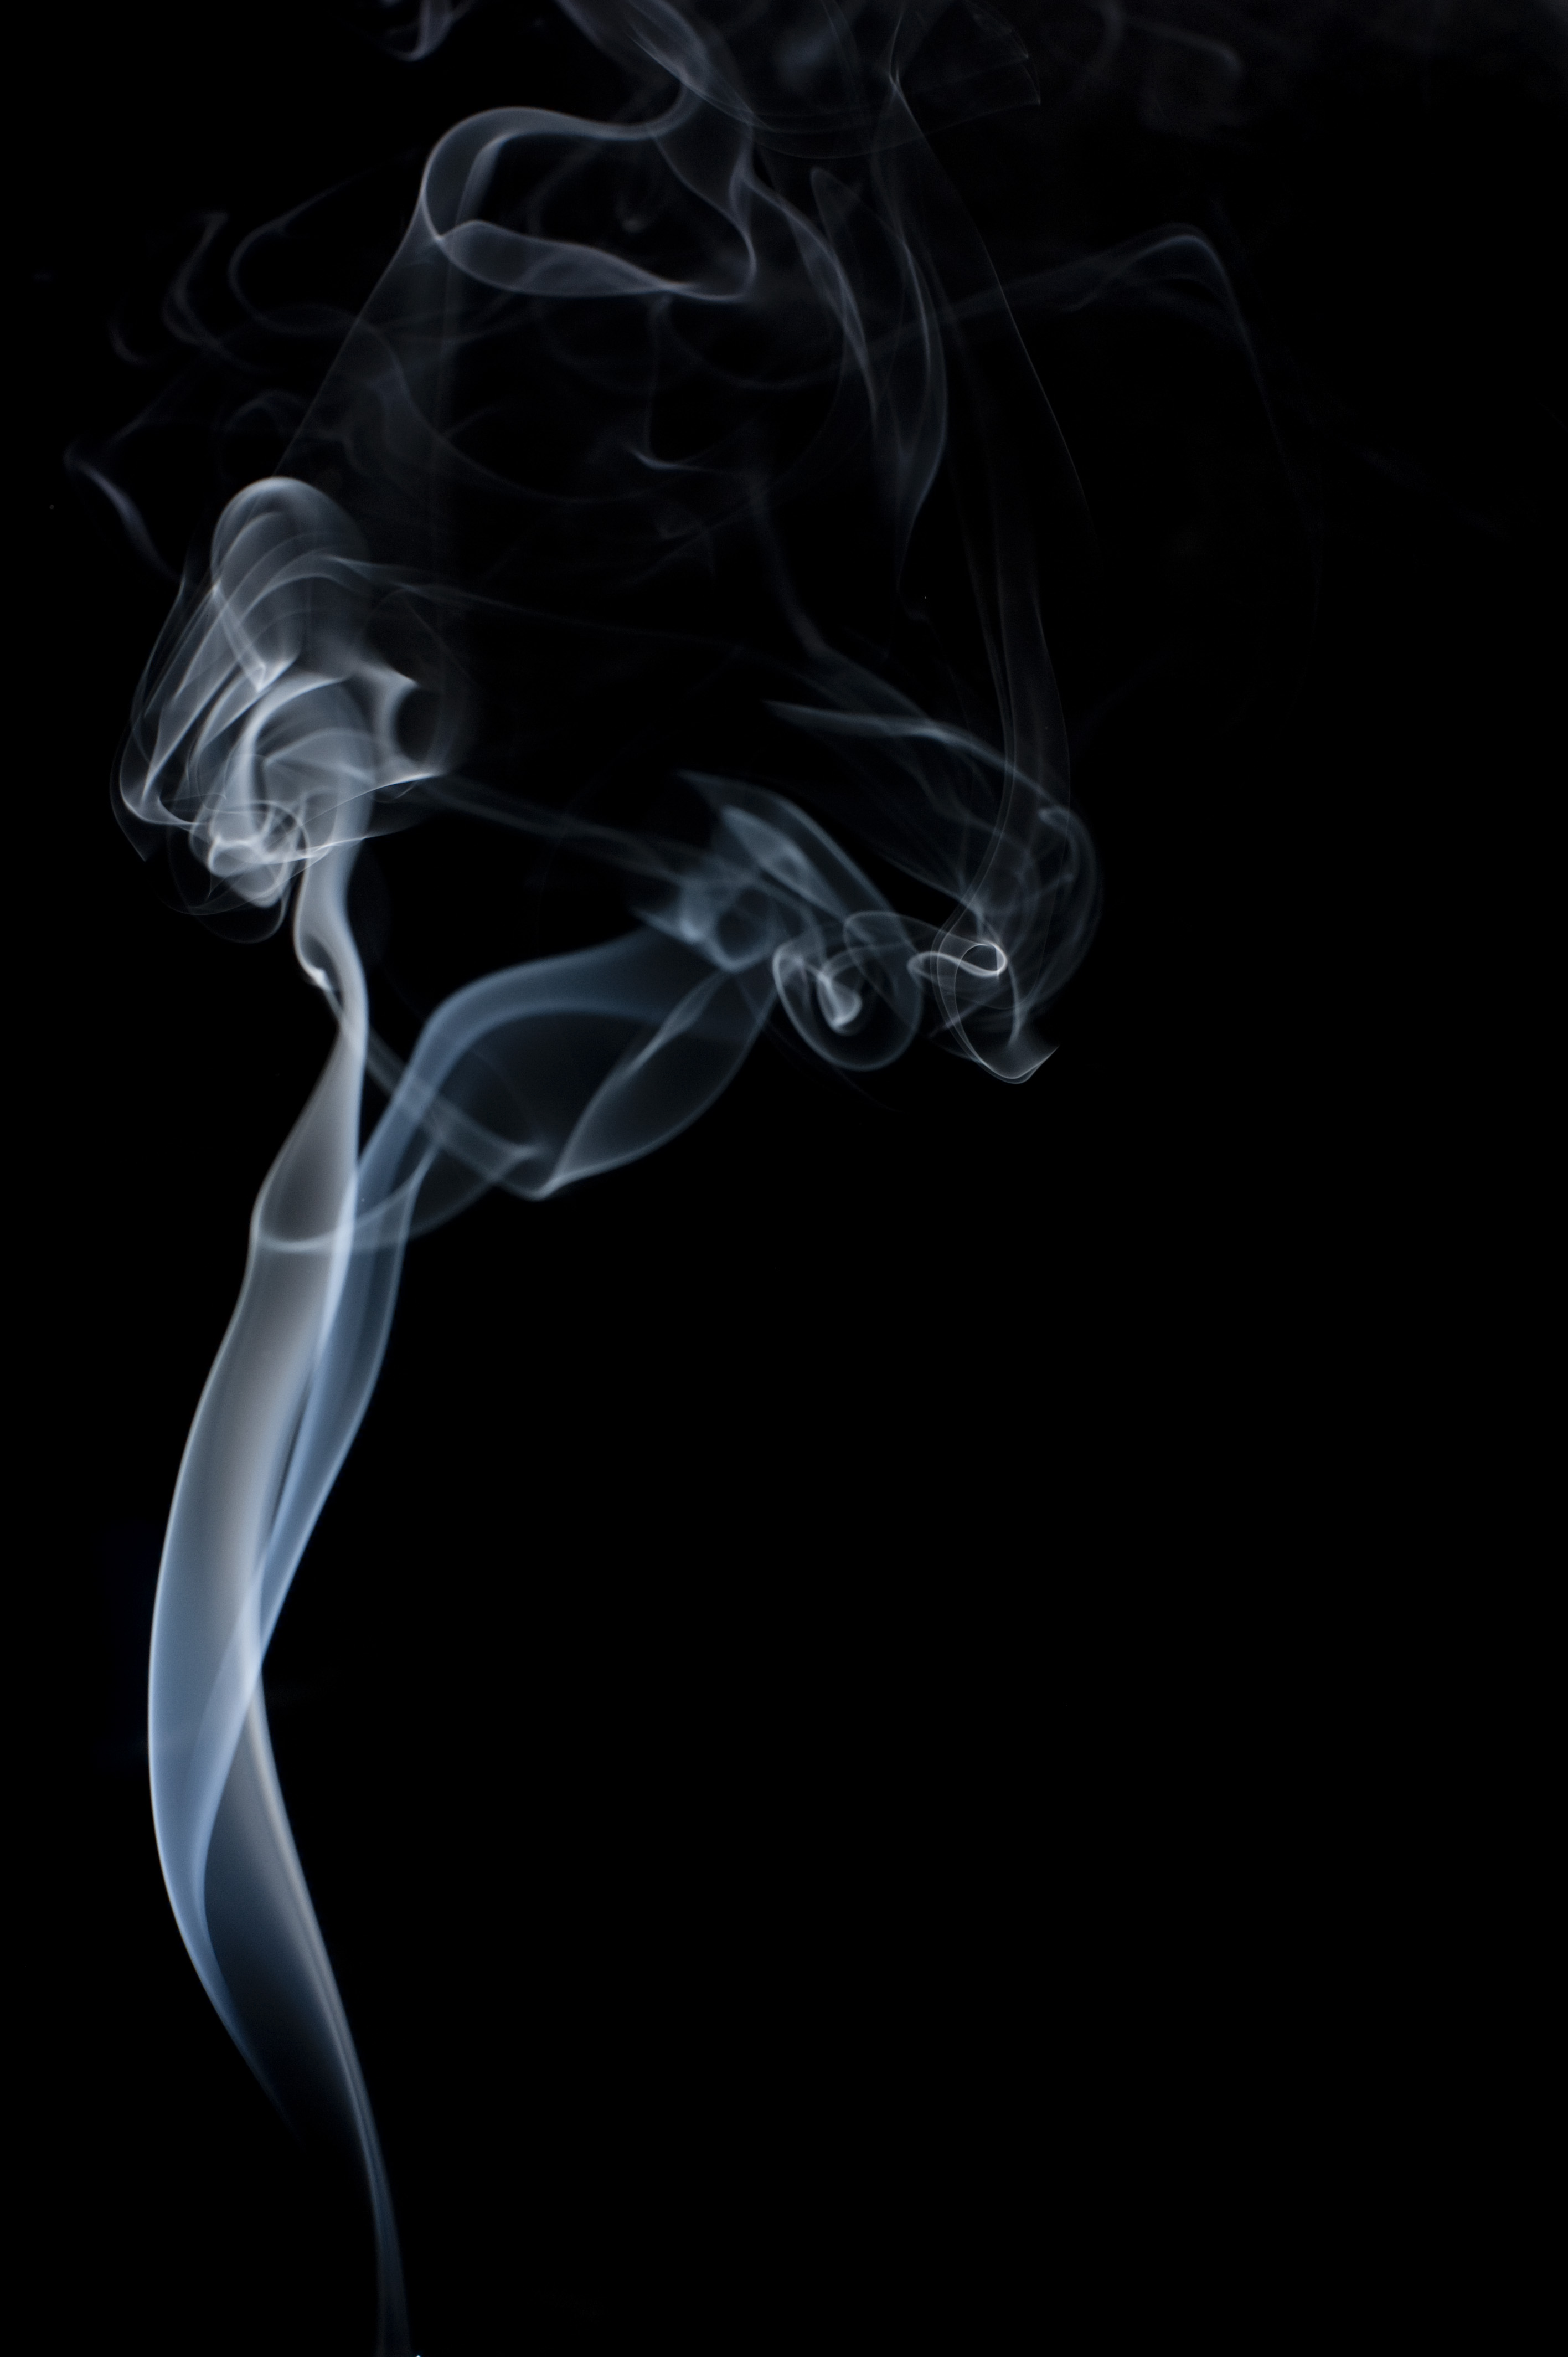 Keywords smoke black background backdrop smoky effect twist effect